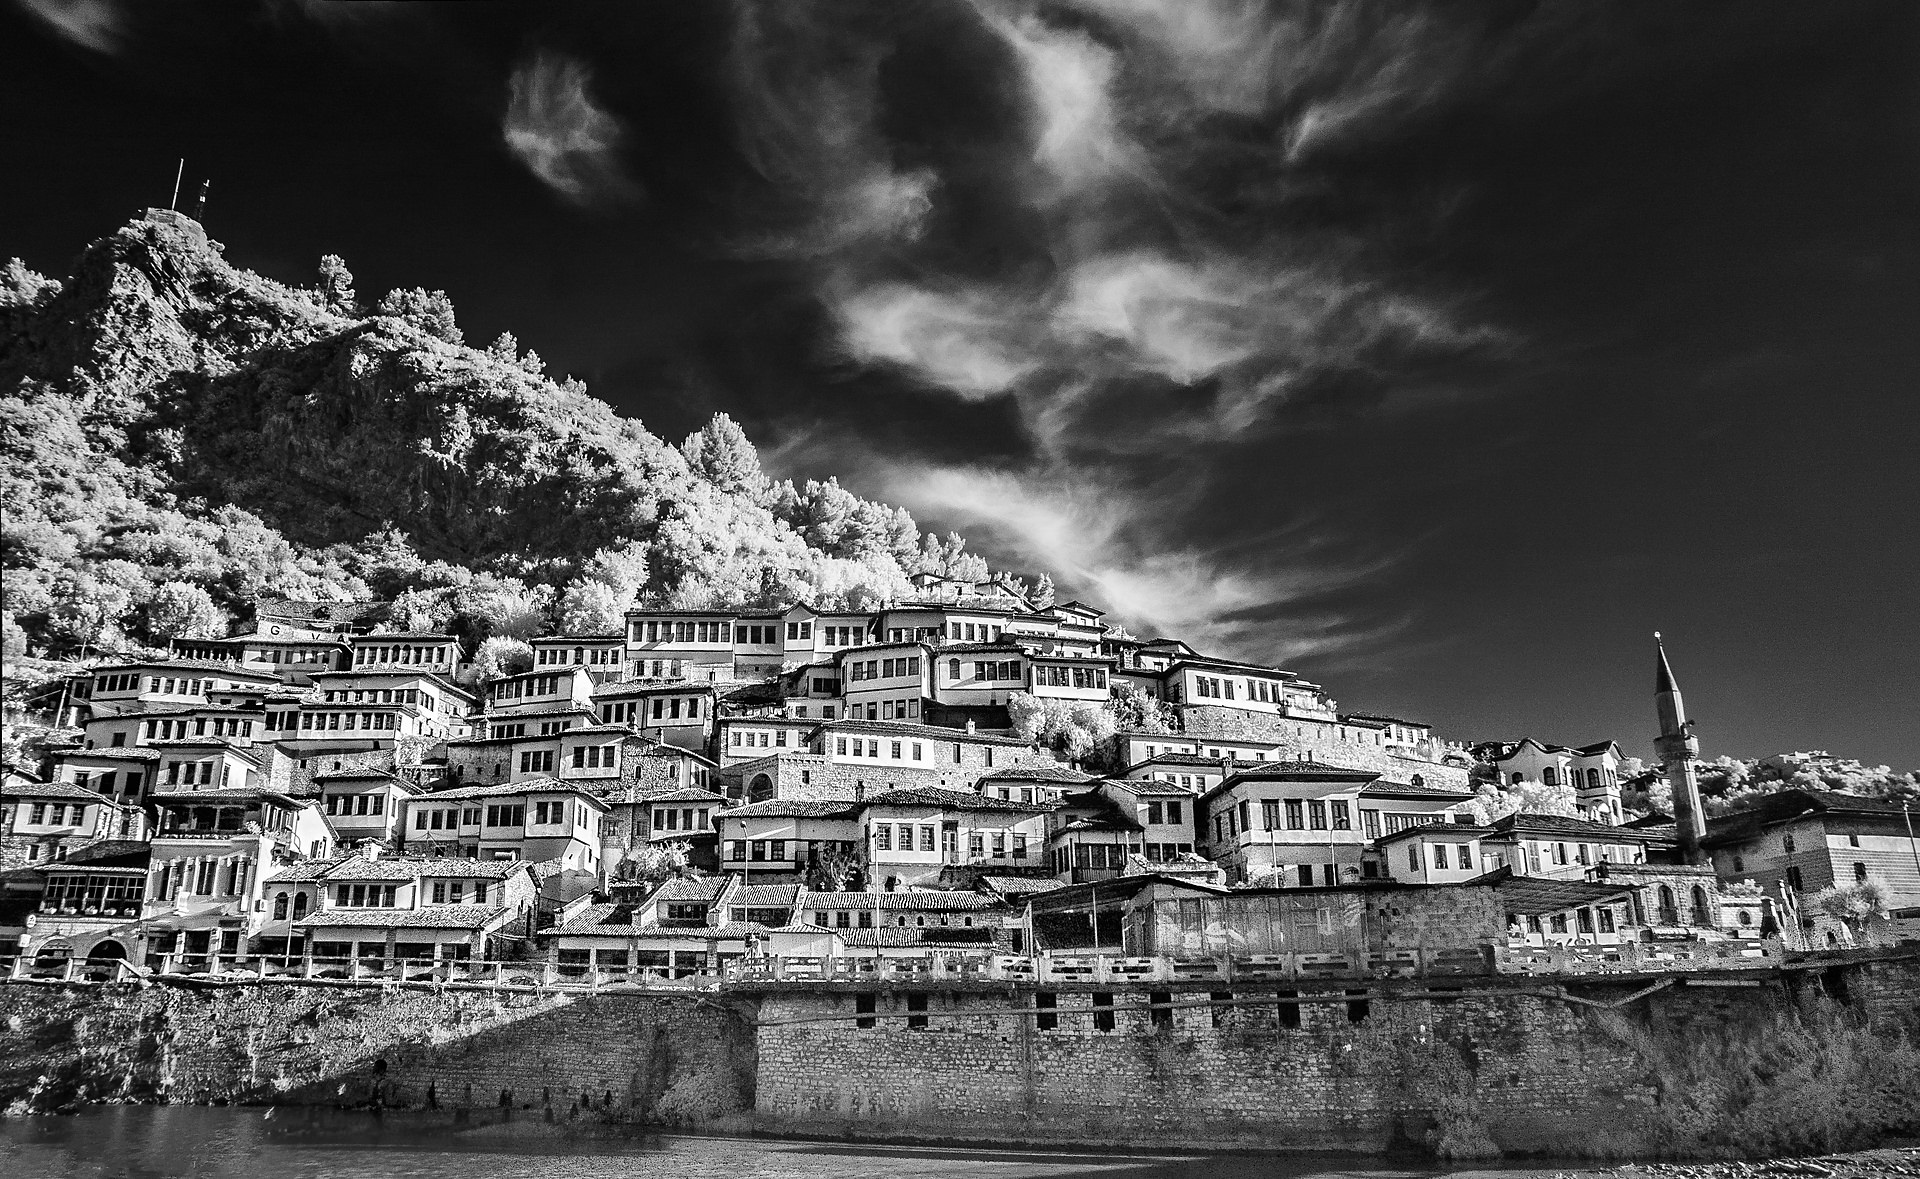 City of a Thousand Windows, Berat, Albania, 2015